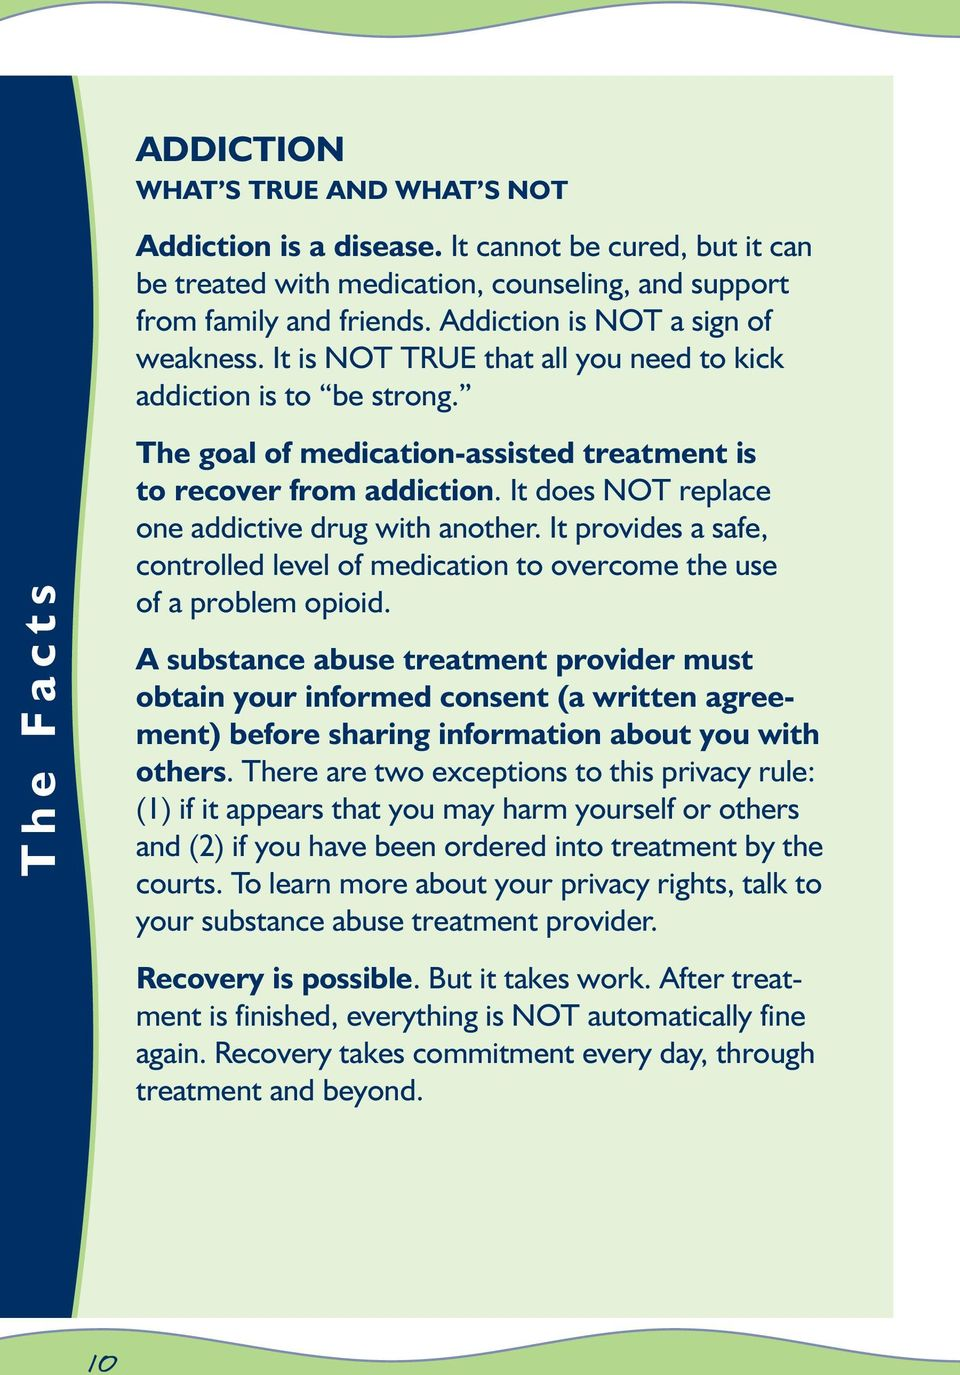 It does NOT replace one addictive drug with another. It provides a safe, controlled level of medication to overcome the use of a problem opioid.